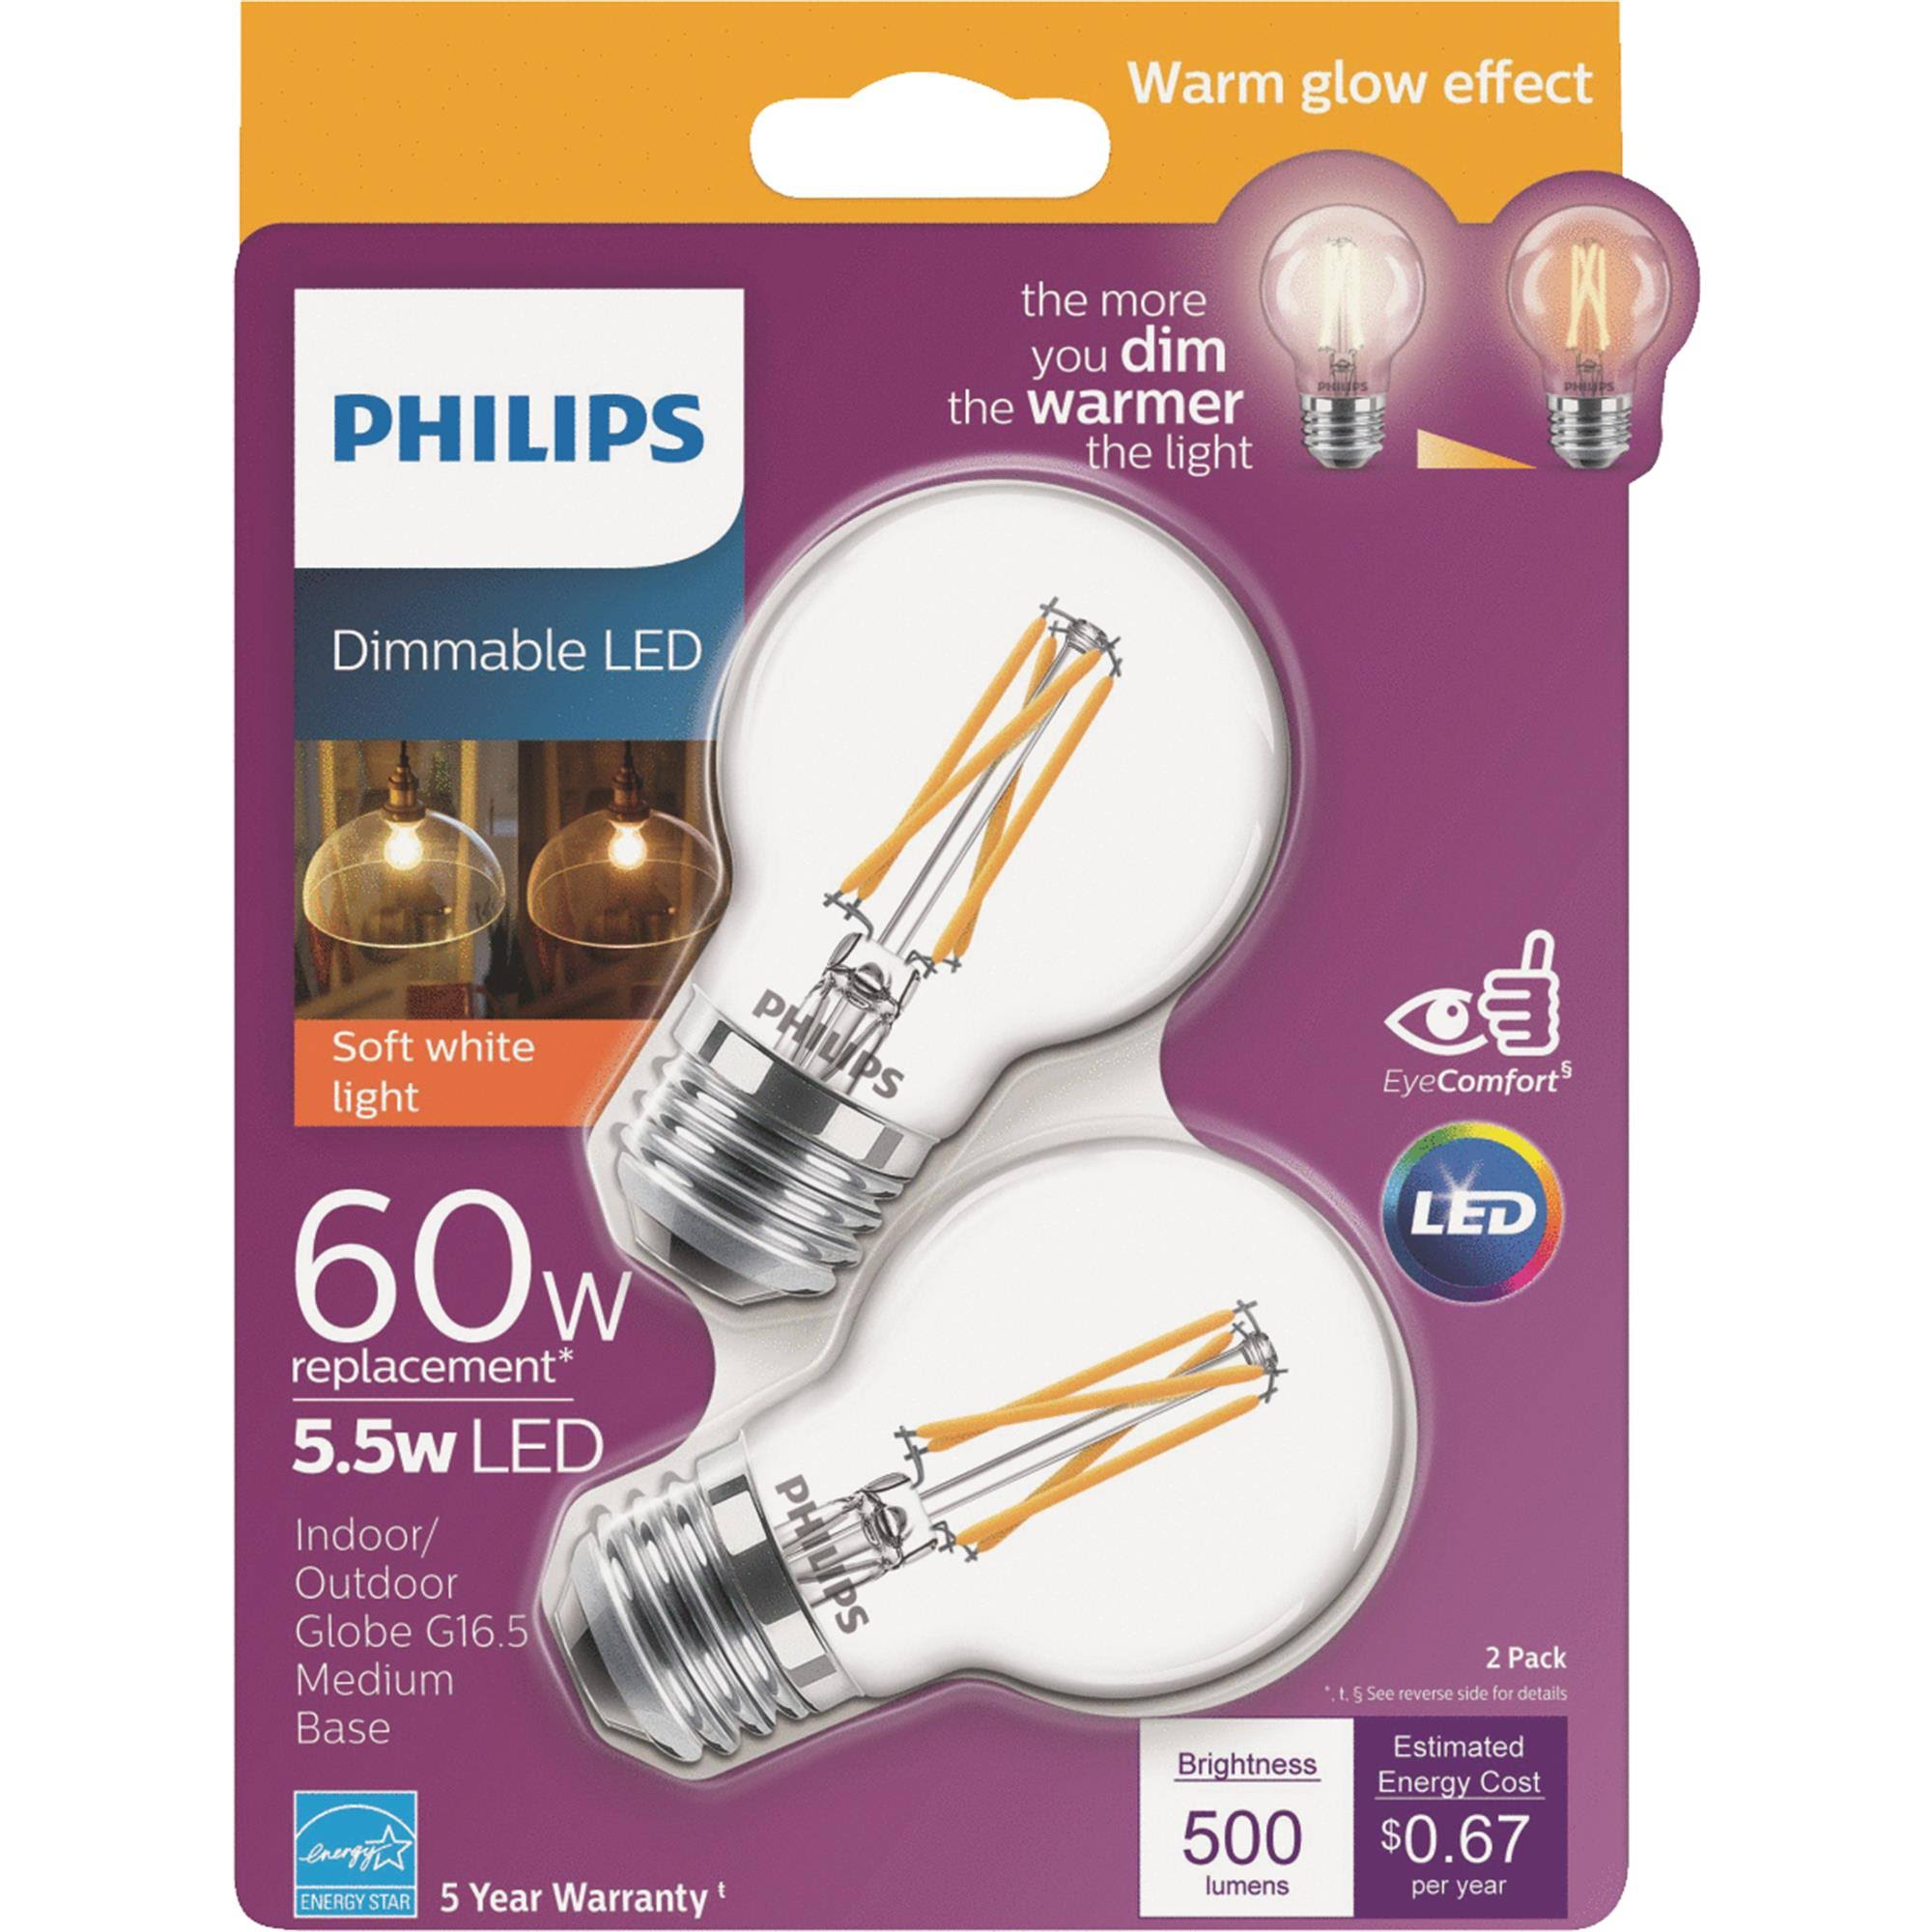 Philips Warm Glow G16.5 Medium Dimmable LED Decorative Light Bulb